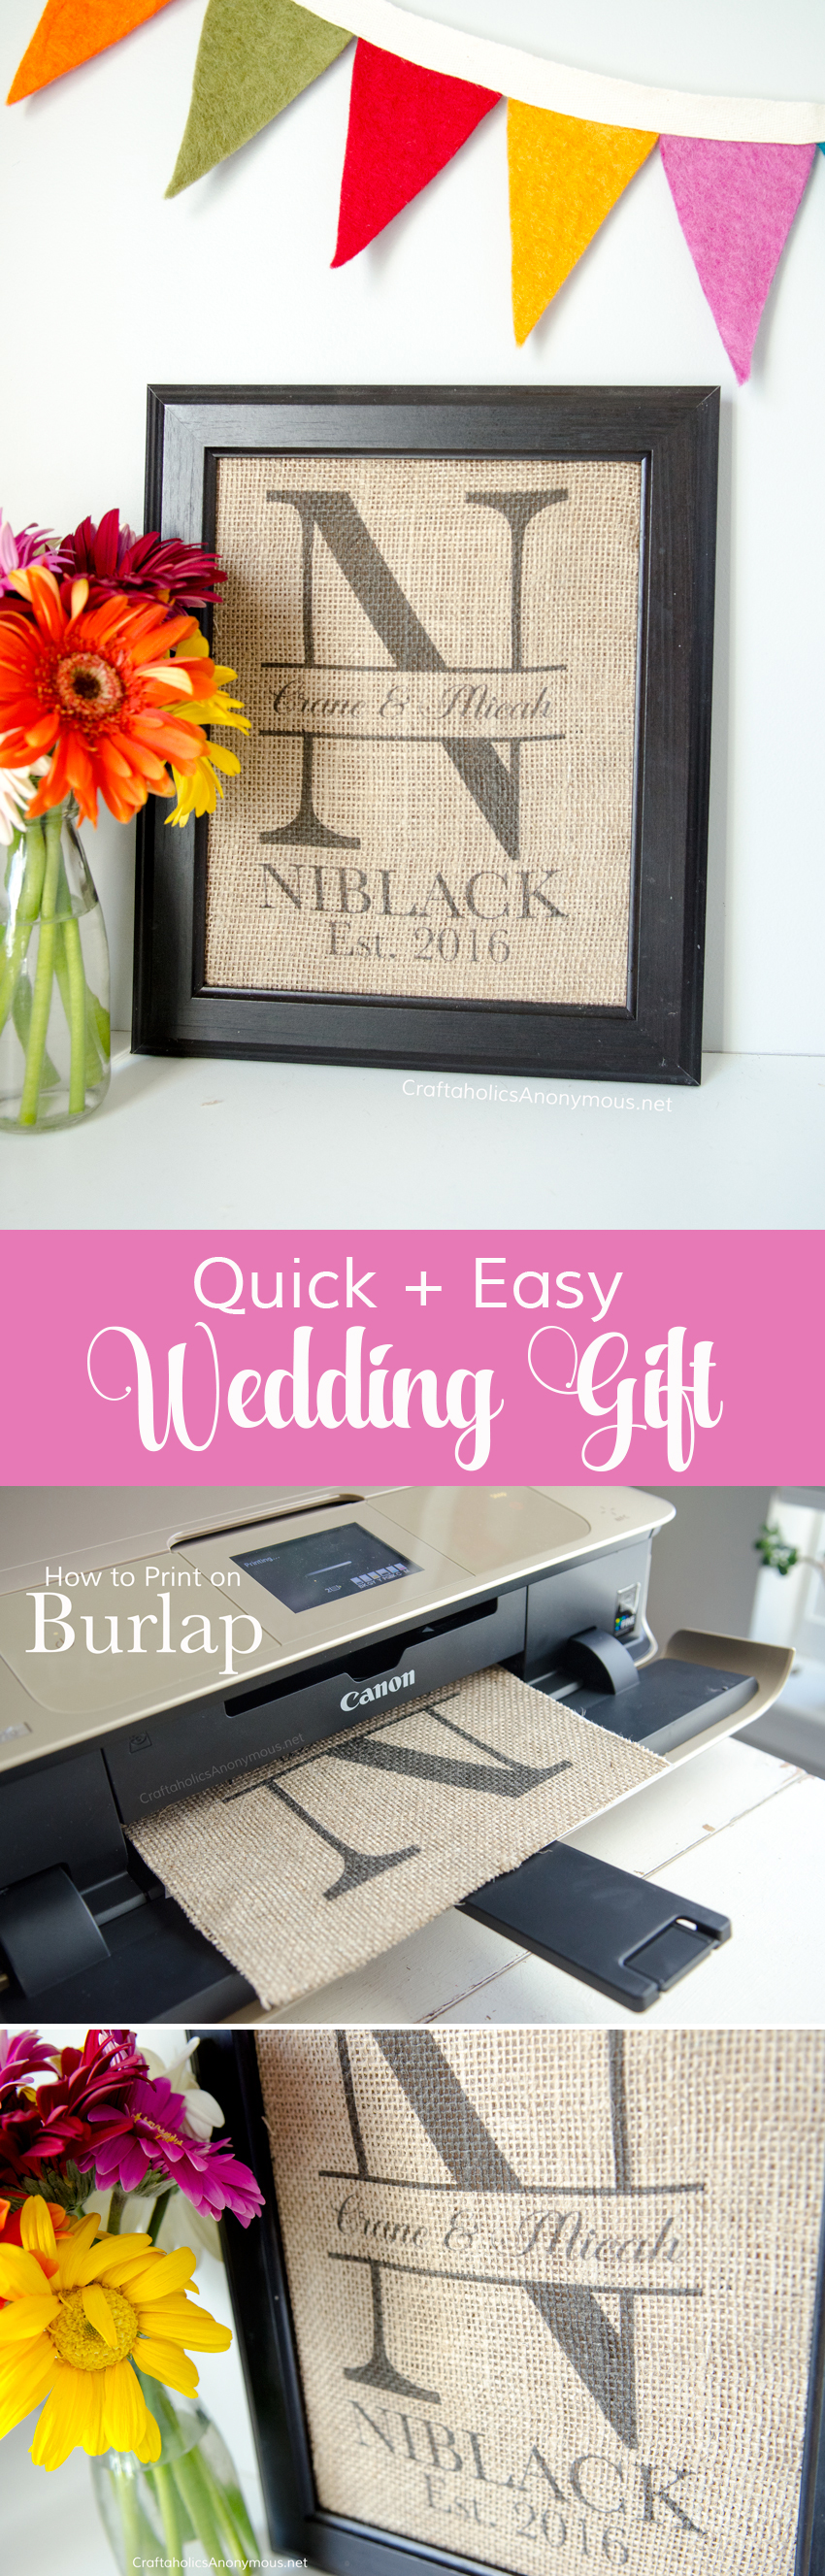 Easy Wedding gift idea! Print custom monogram on burlap and pop in a frame. Love this idea!